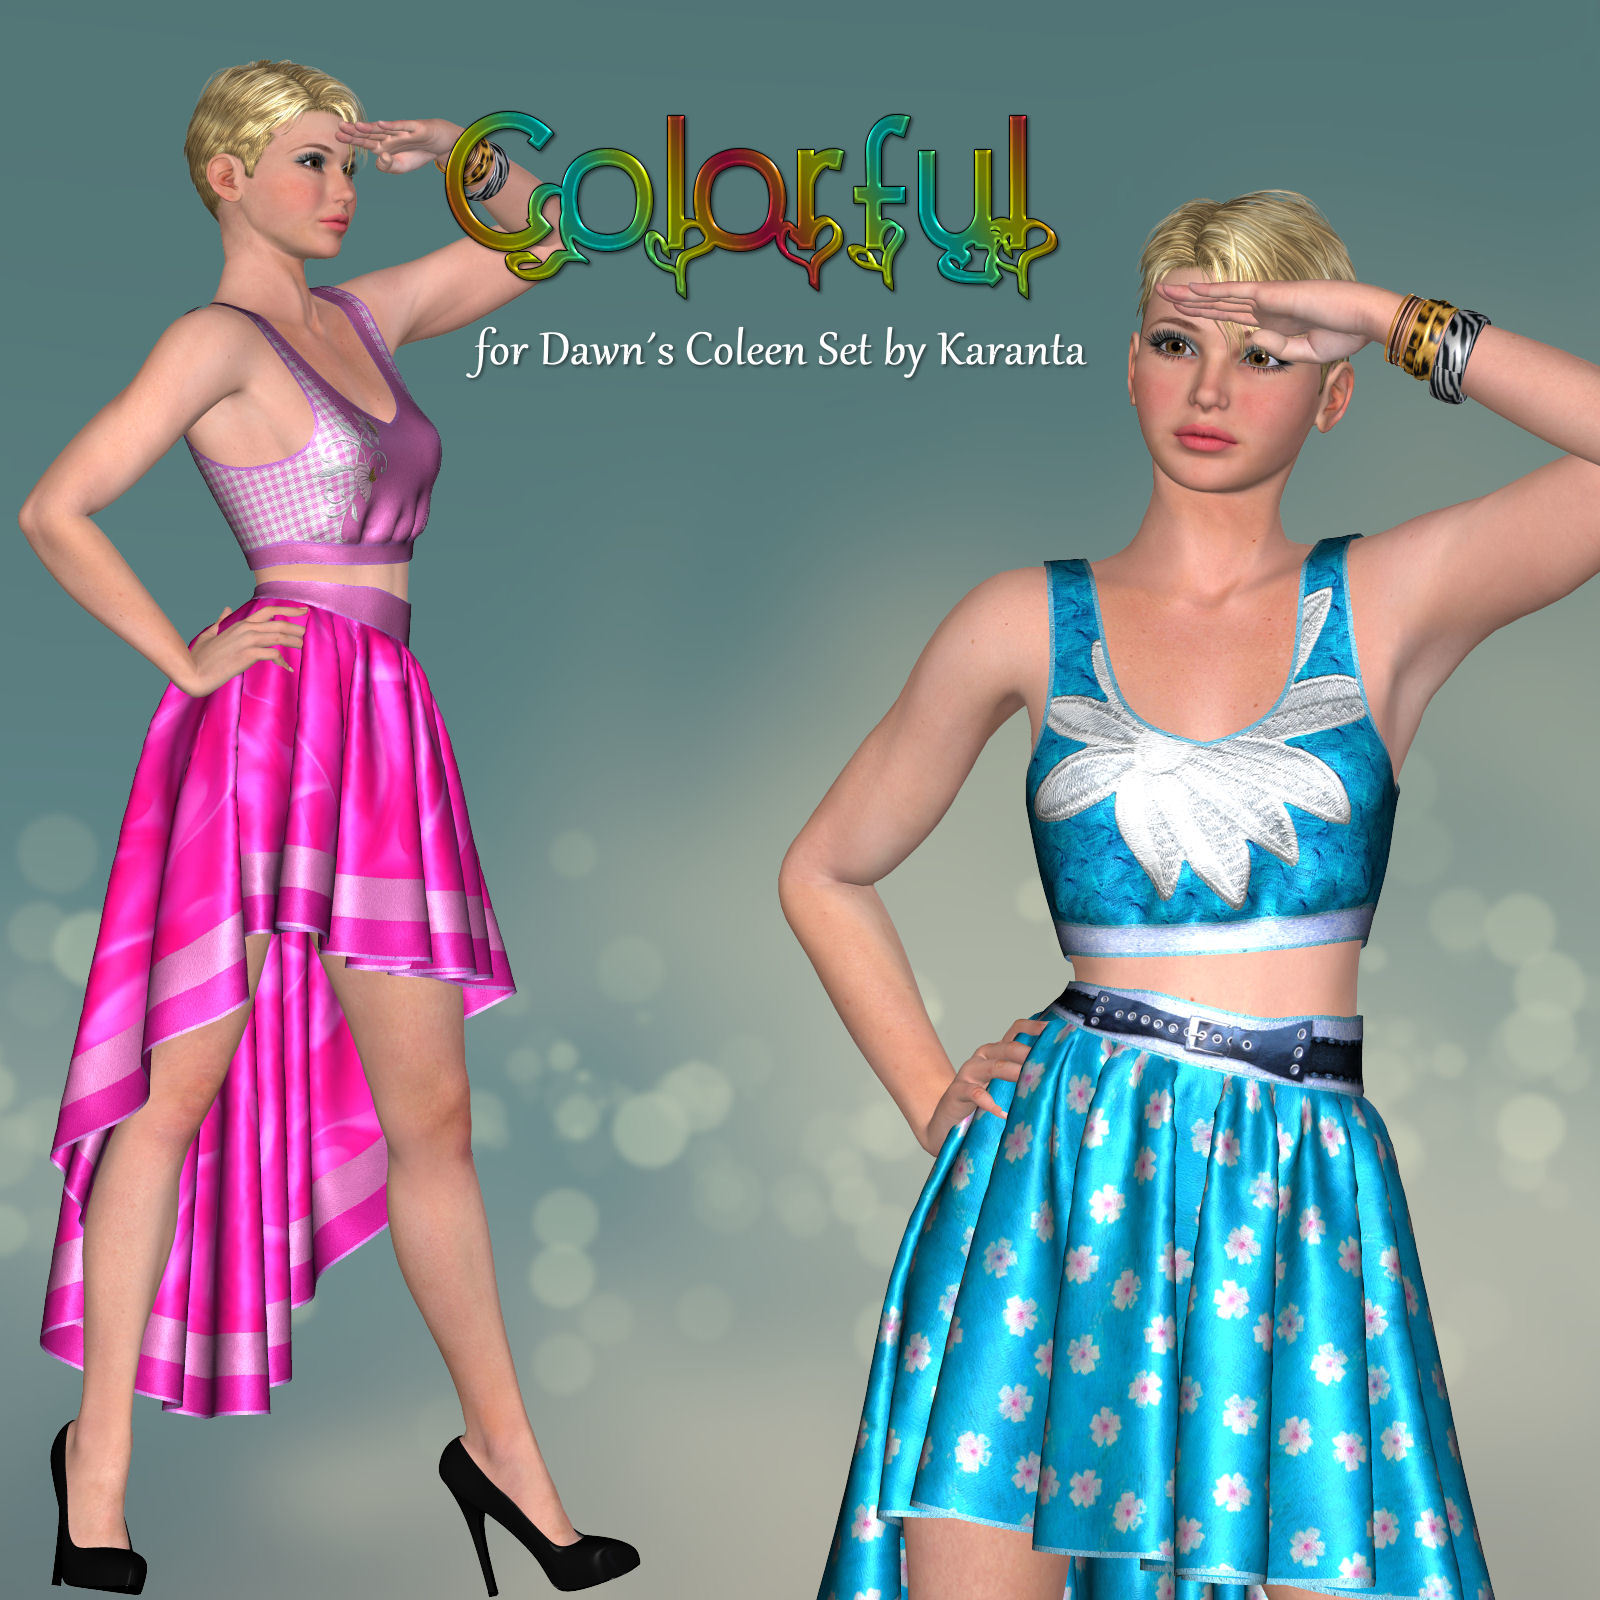 DA-Colorful for Dawns Coleen Set by Karanta by DarkAngelGrafics